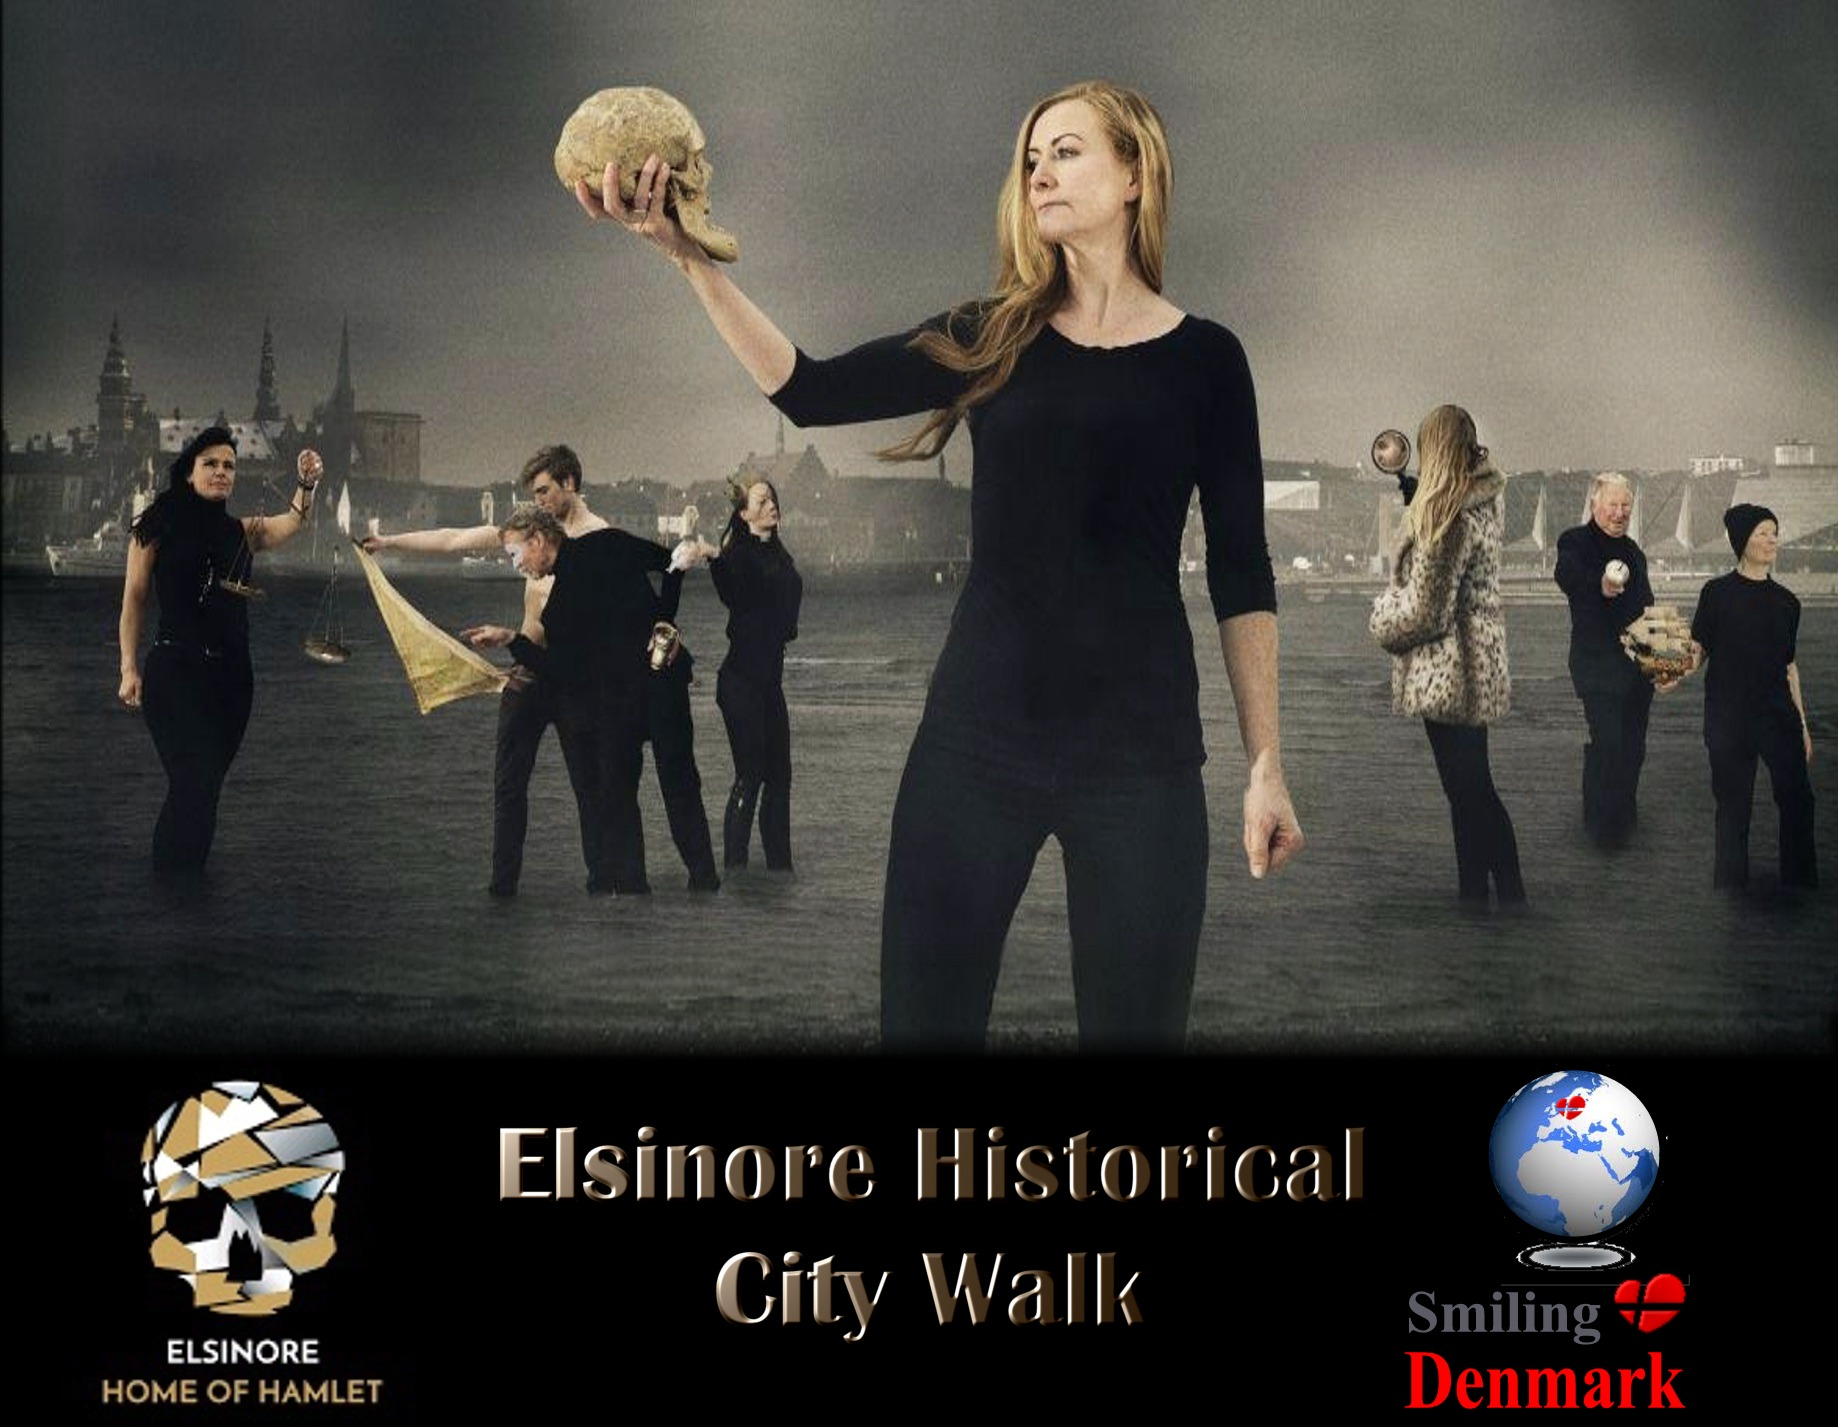 Elsinore Historical City Walk